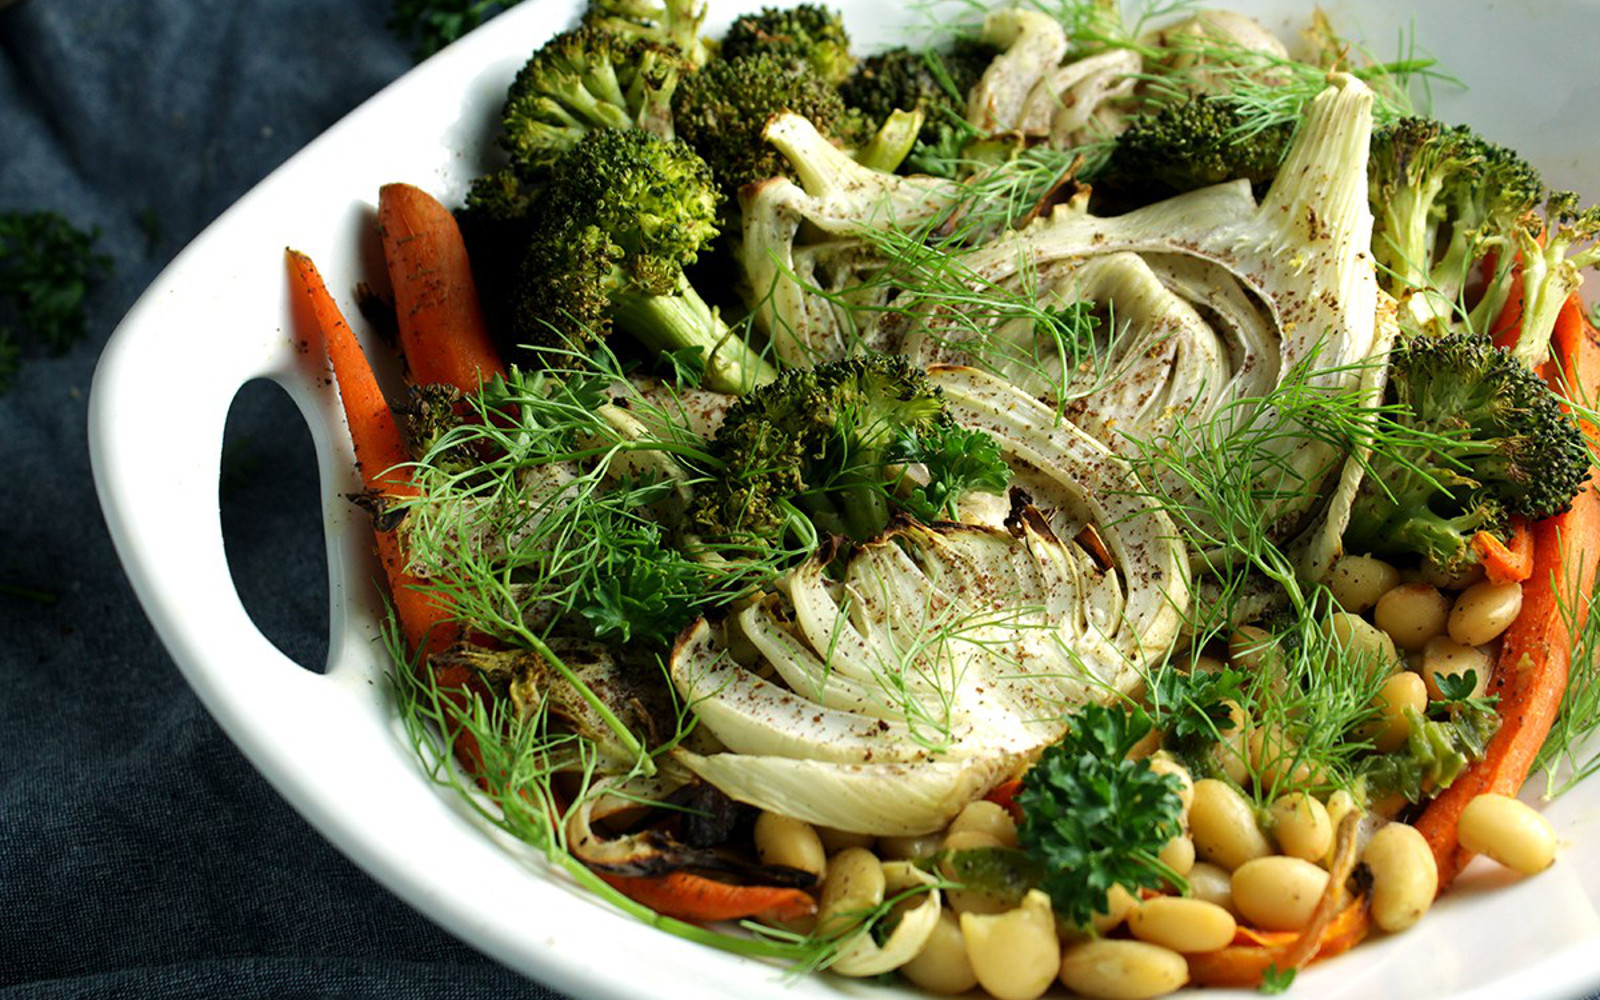 Fennel Bowl With Creamy White Beans and Dry Roasted Vegetables